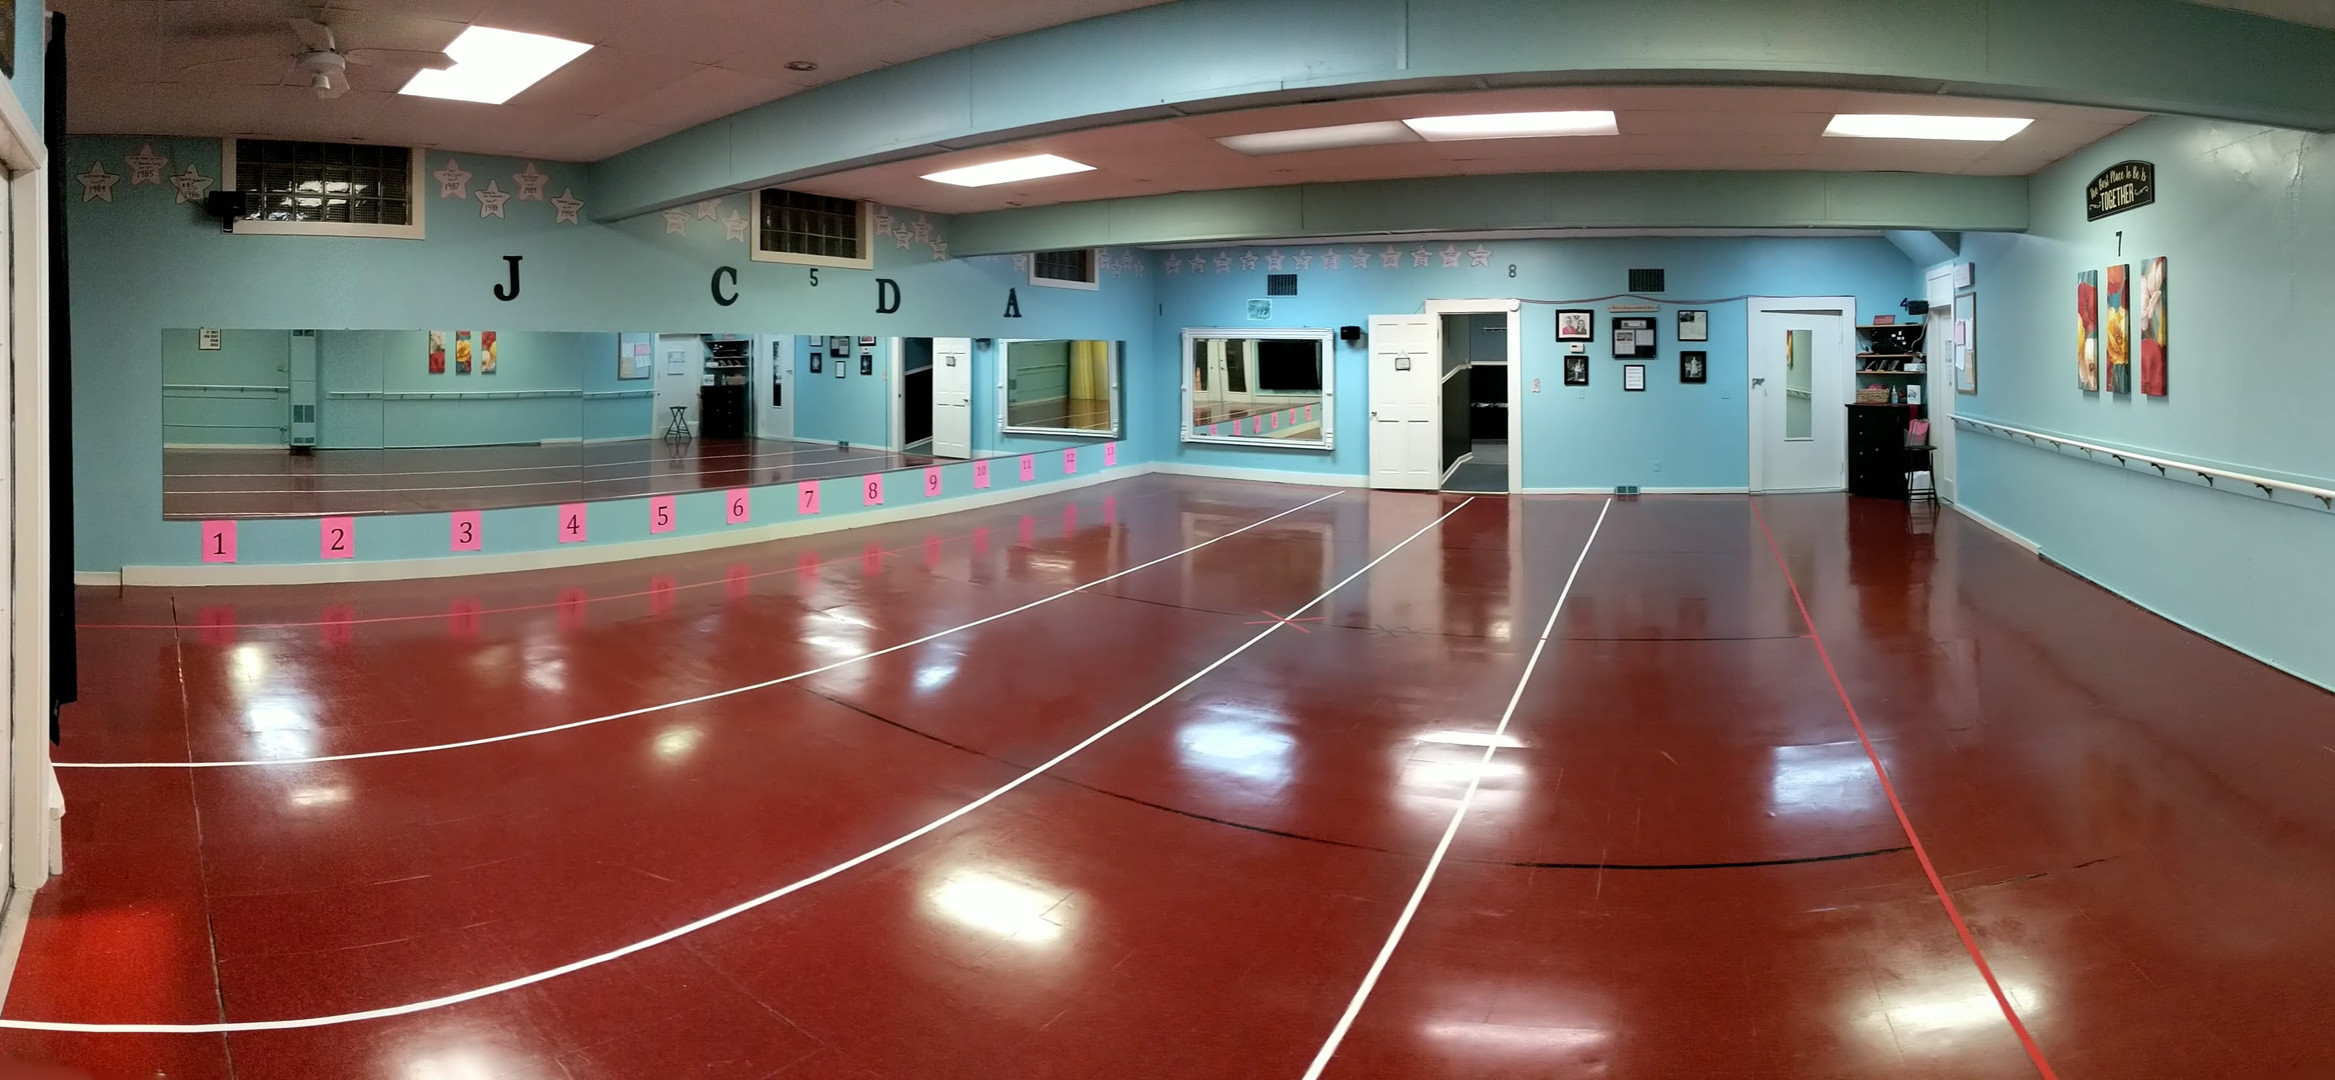 Our dance studio